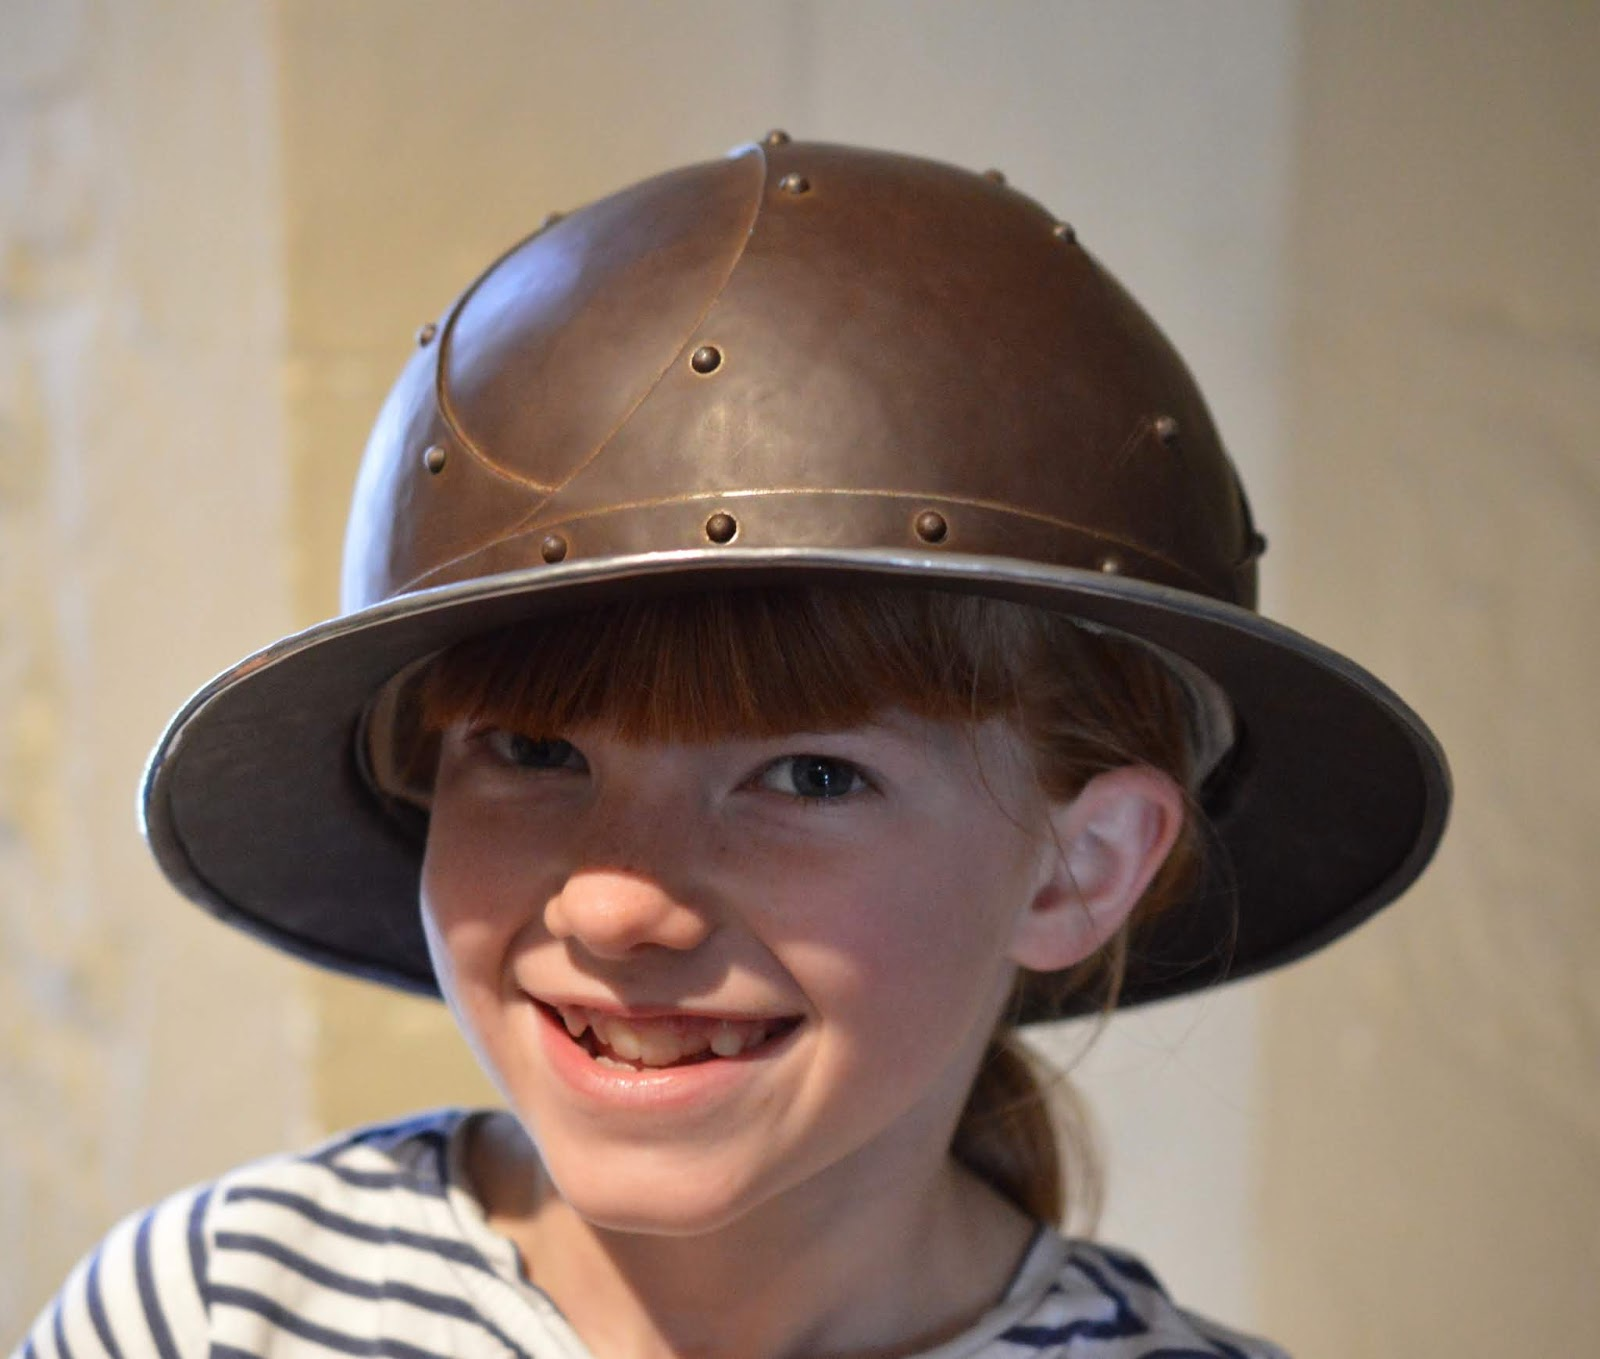 The LNER Family Return Ticket Newcastle-London. #OurLNER #FamilyReturn  - trying on hard hats at the tower of London